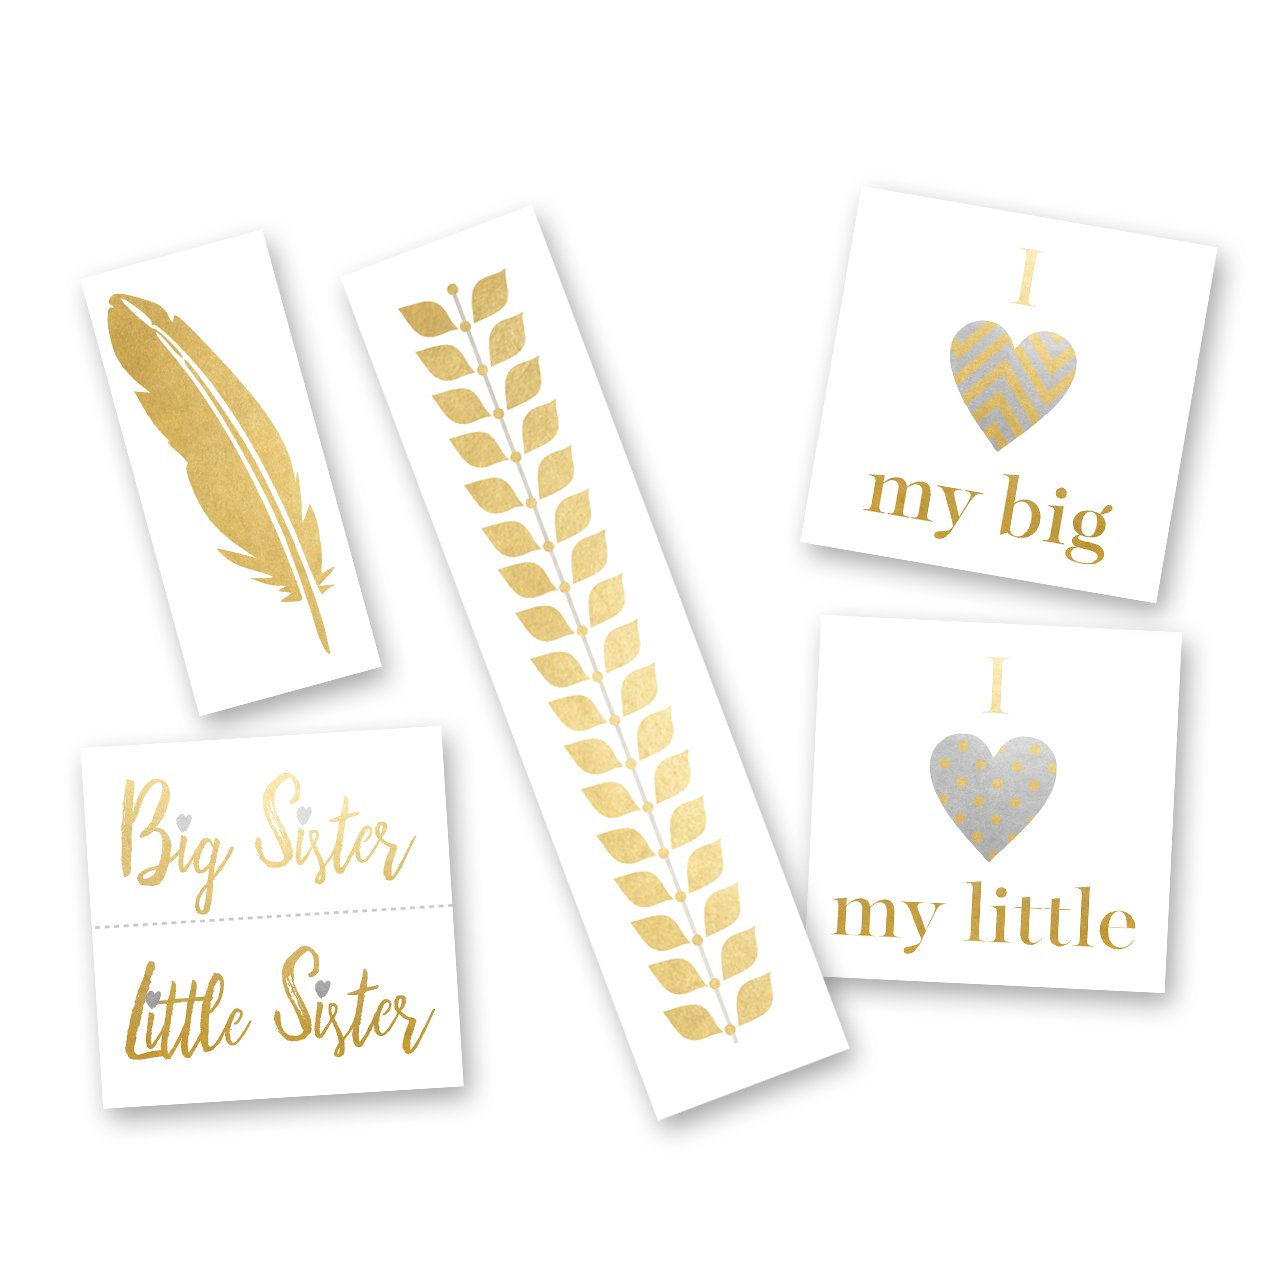 SORORITY SISTERS VARIETY SET Flash Tattoos set of 25 assorted premium waterproof metallic gold and silver jewelry temporary foil Greek party tattoos, sorority, metallic tattoo ,